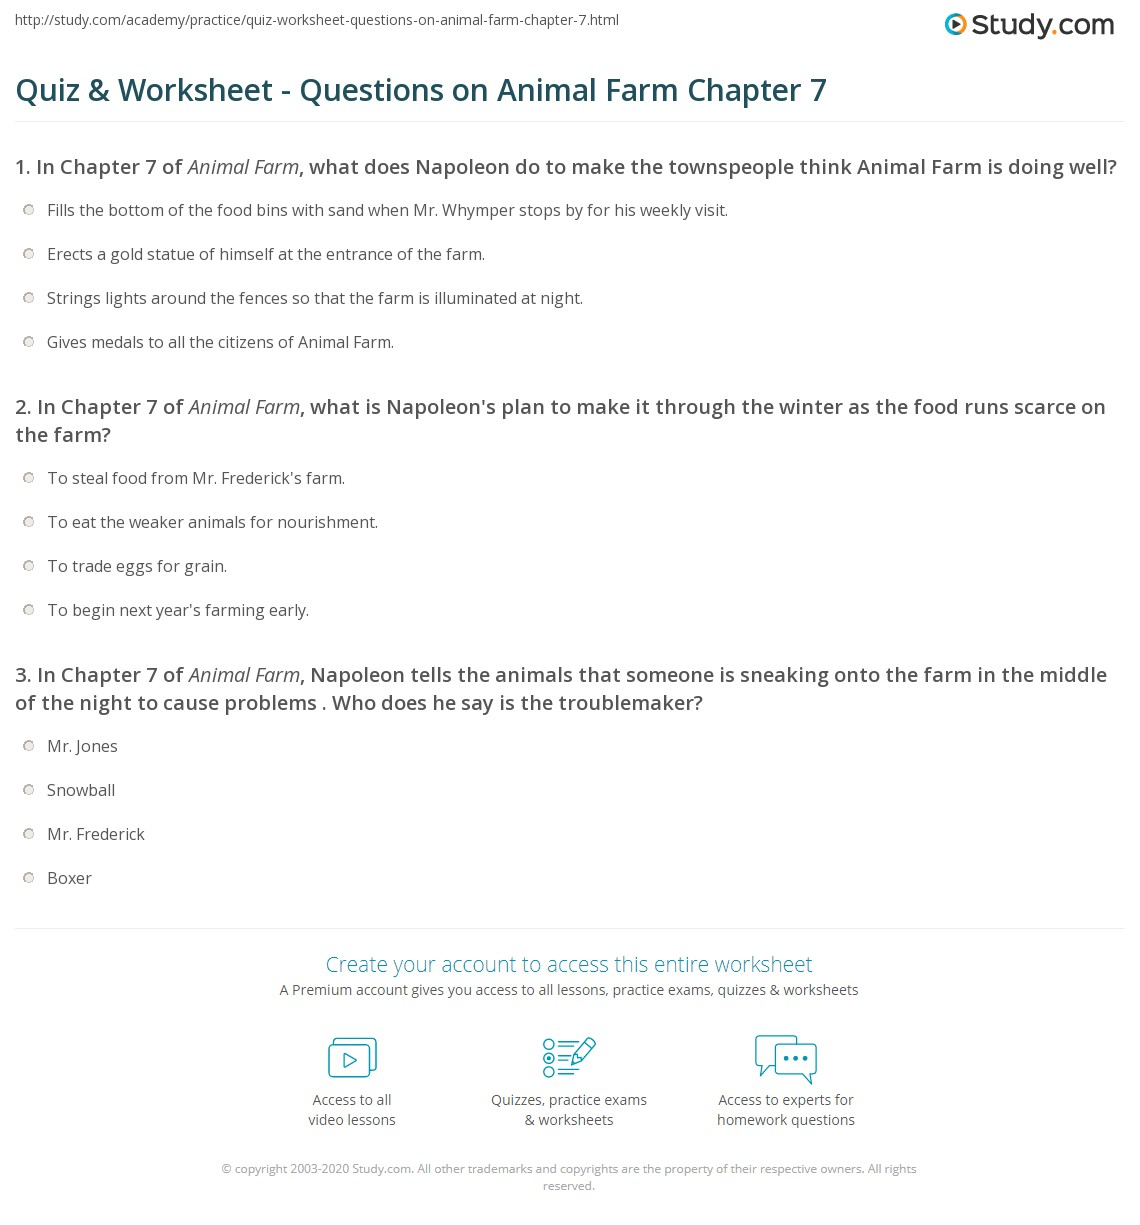 quiz worksheet questions on animal farm chapter com in chapter 7 of animal farm what is napoleon s plan to make it through the winter as the food runs scarce on the farm